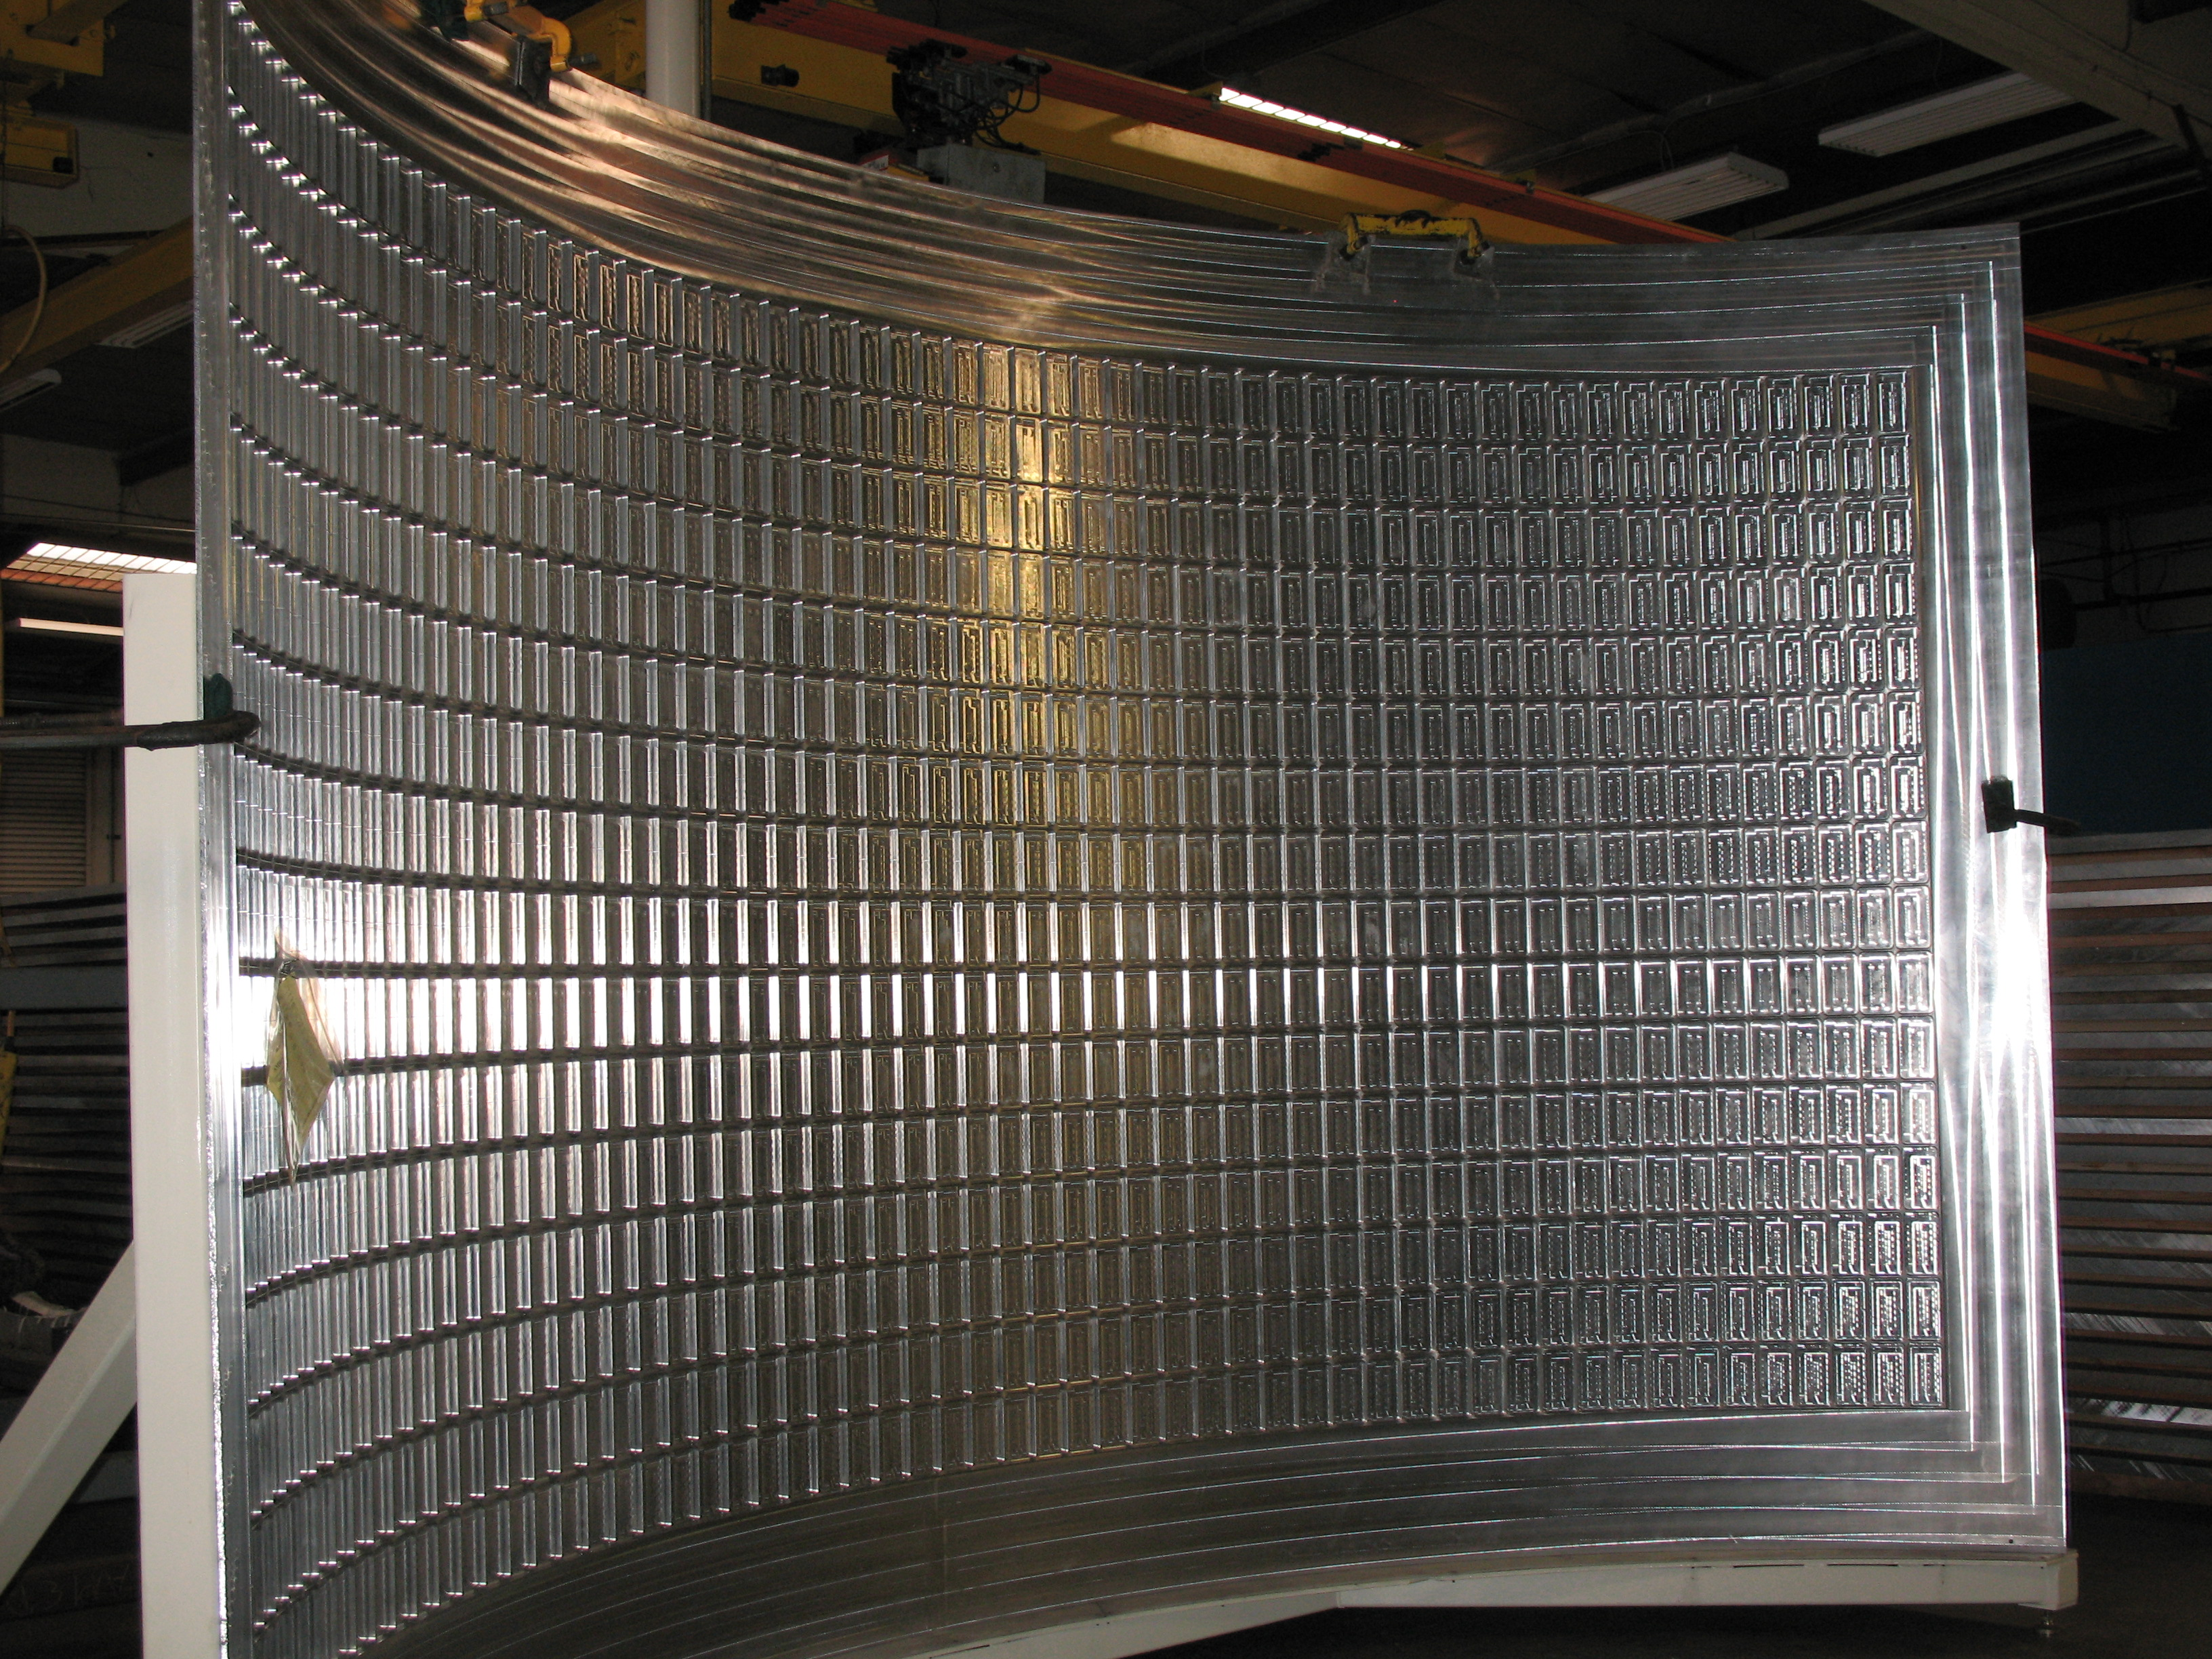 Figure 9. An example of an aluminum alloy panel after machining, forming, and artificial aging operations.